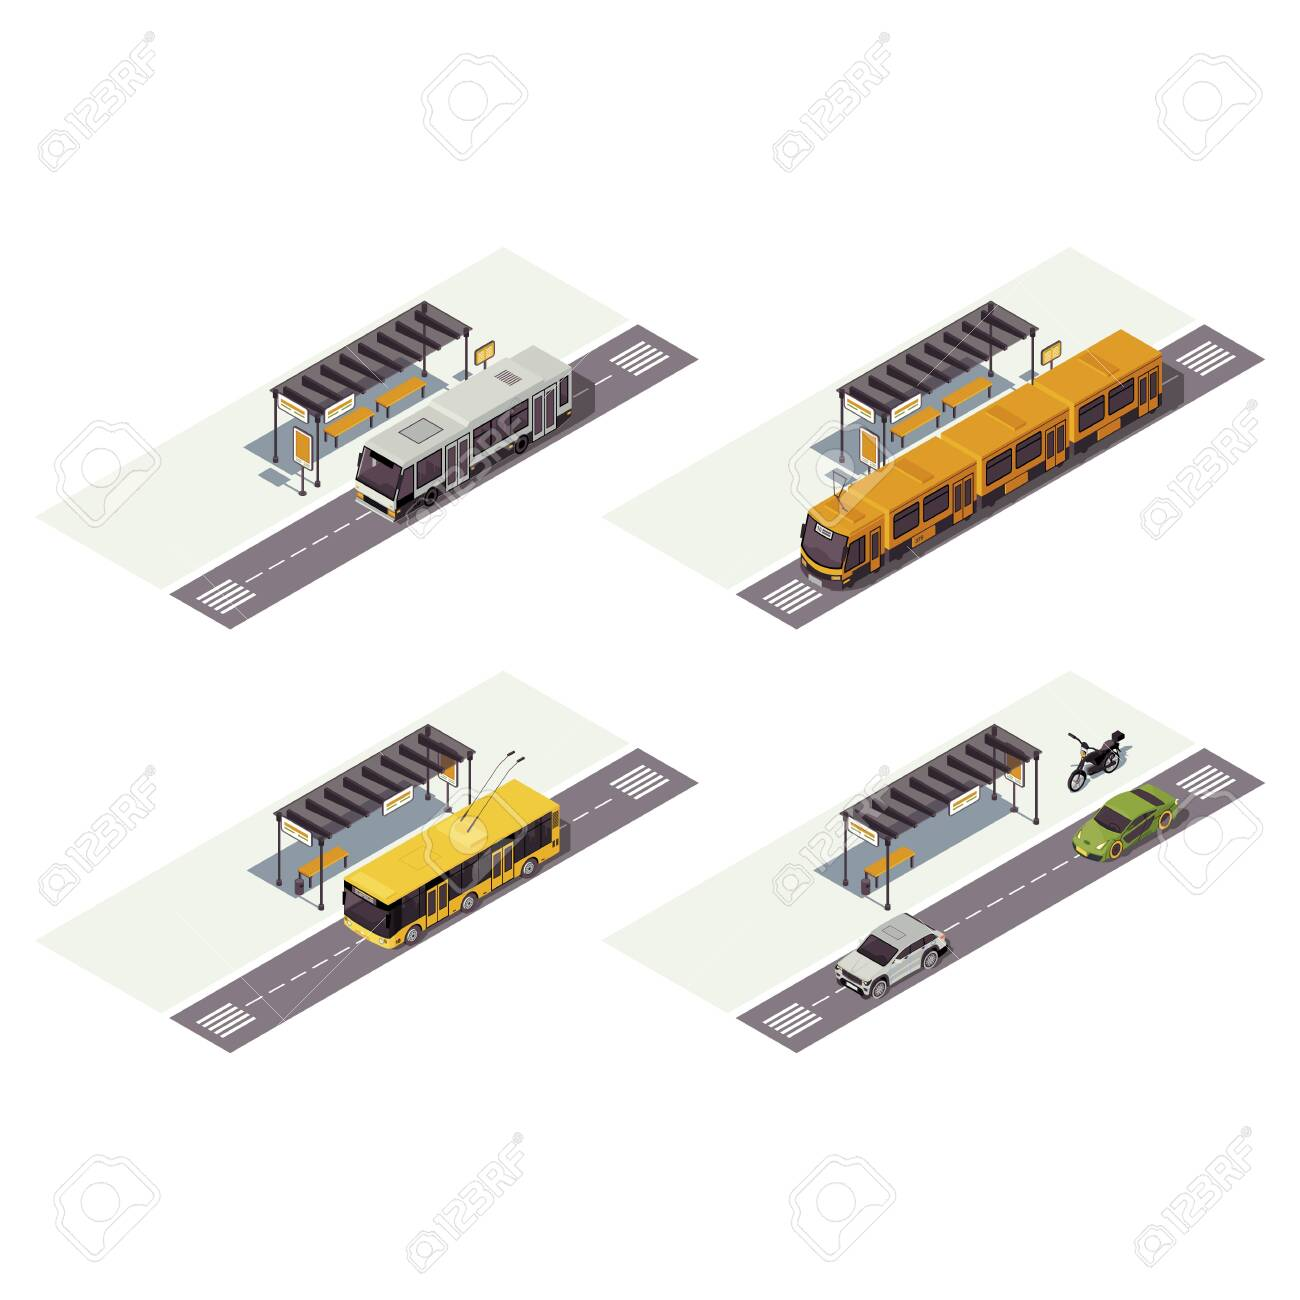 City transport isometric color vector illustration. Public urban transportation infographic. Bus stop. Tram, trolleybus, cars and motorcycle. Auto 3d concept isolated on white background - 130419160